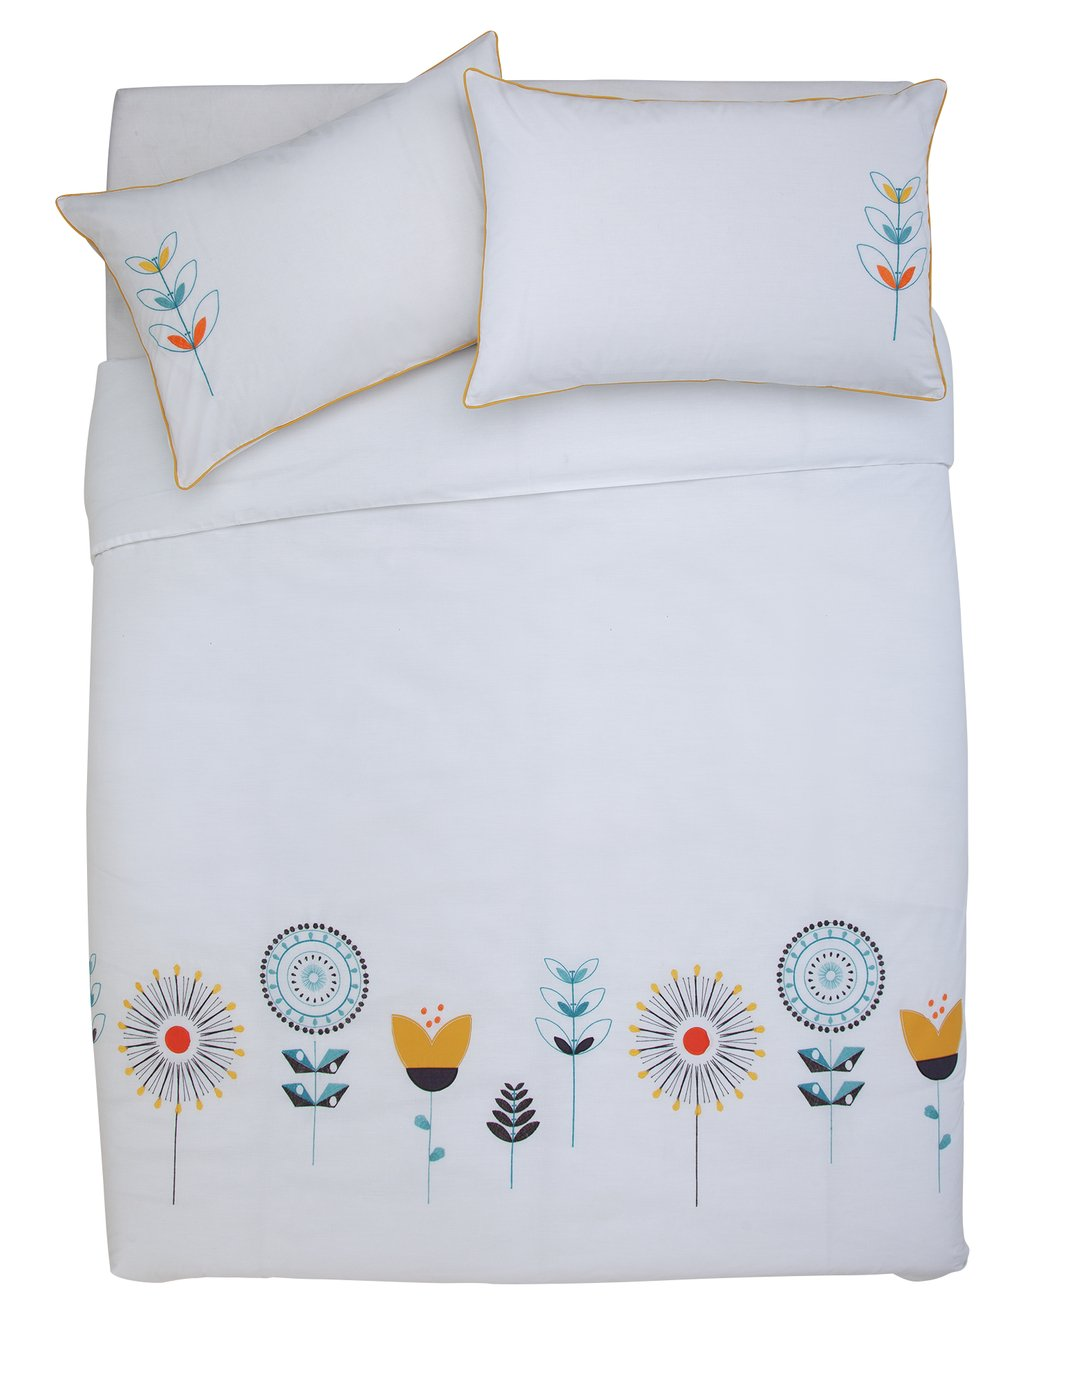 Argos Home Retro Embroidery Bedding Set - Kingsize